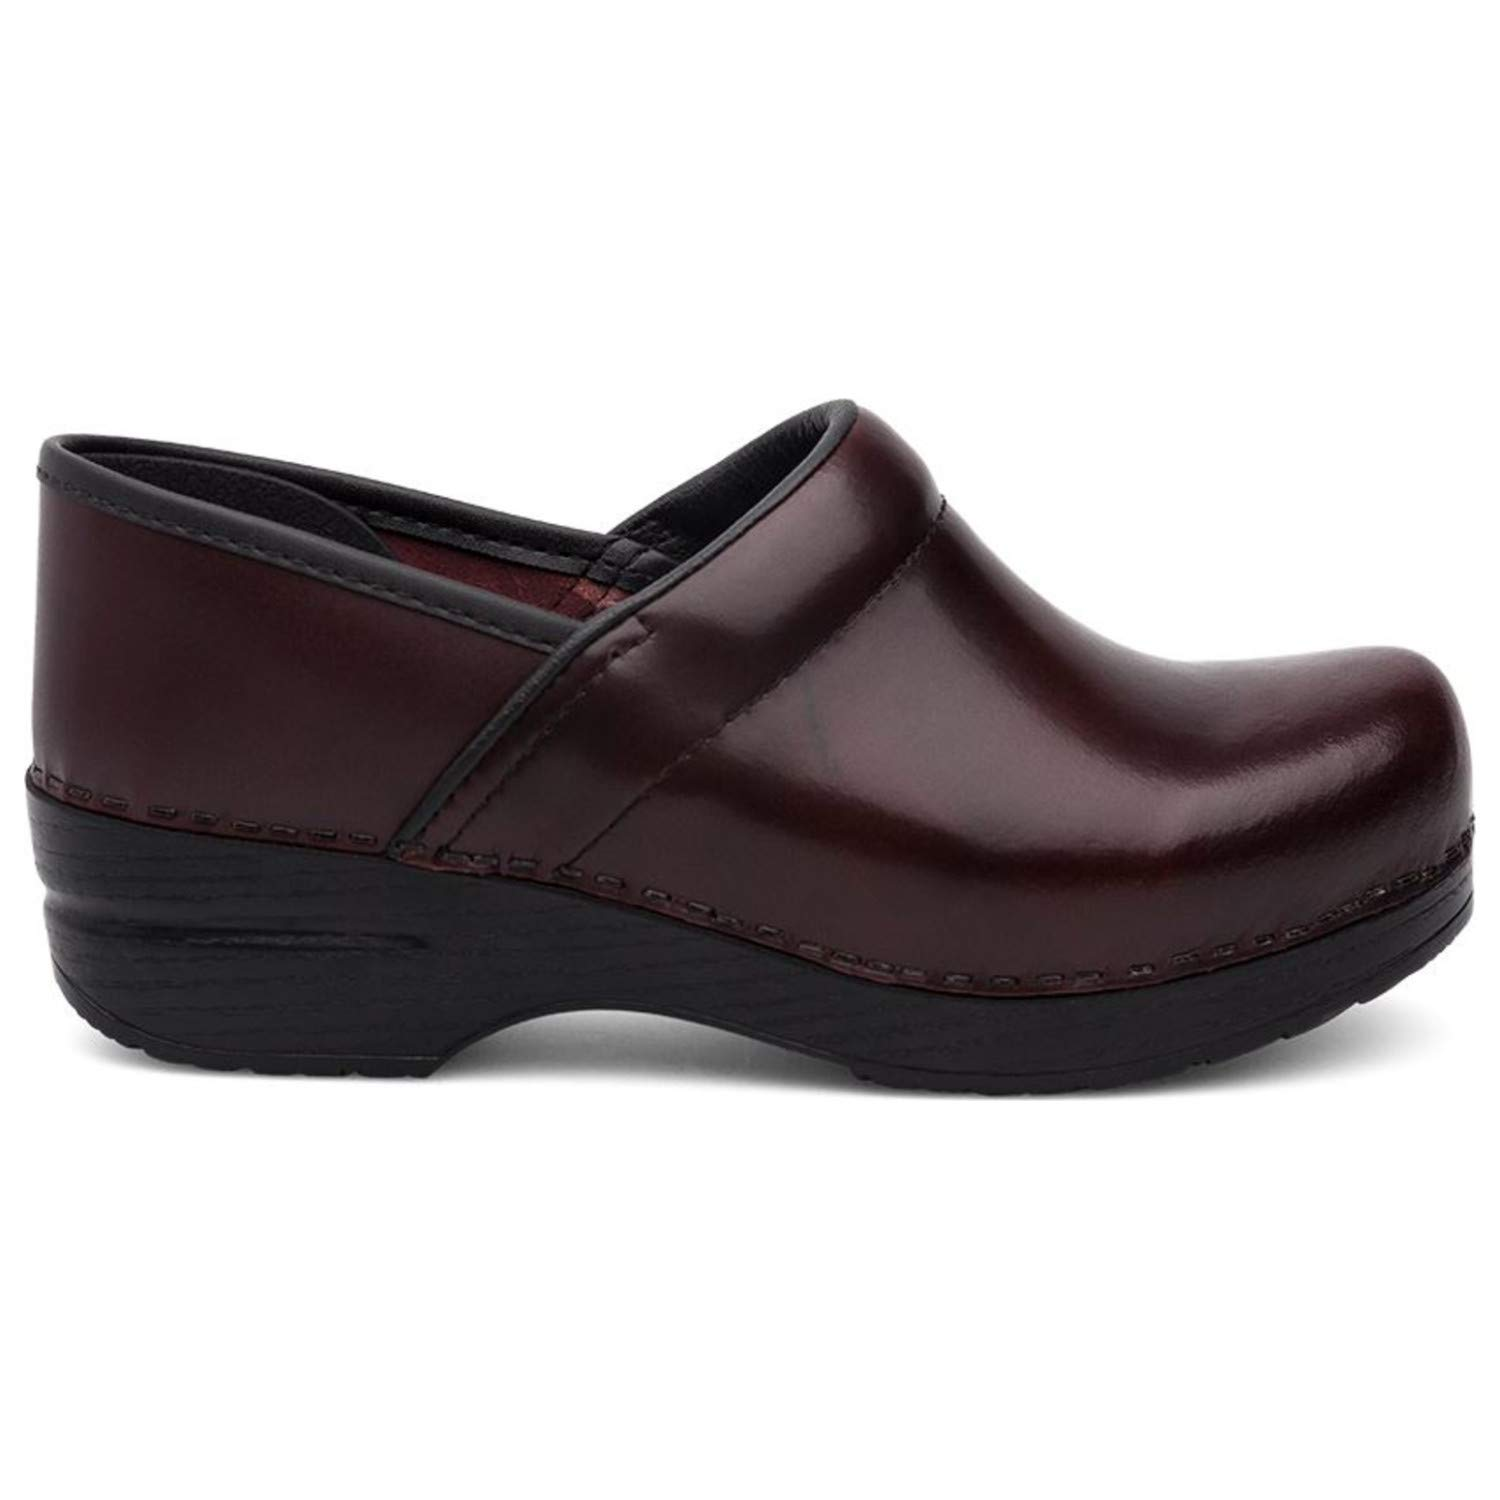 Dansko Women's Professional Mule,Cordovan Cabrio Leather,39 EU/8.5-9 M US